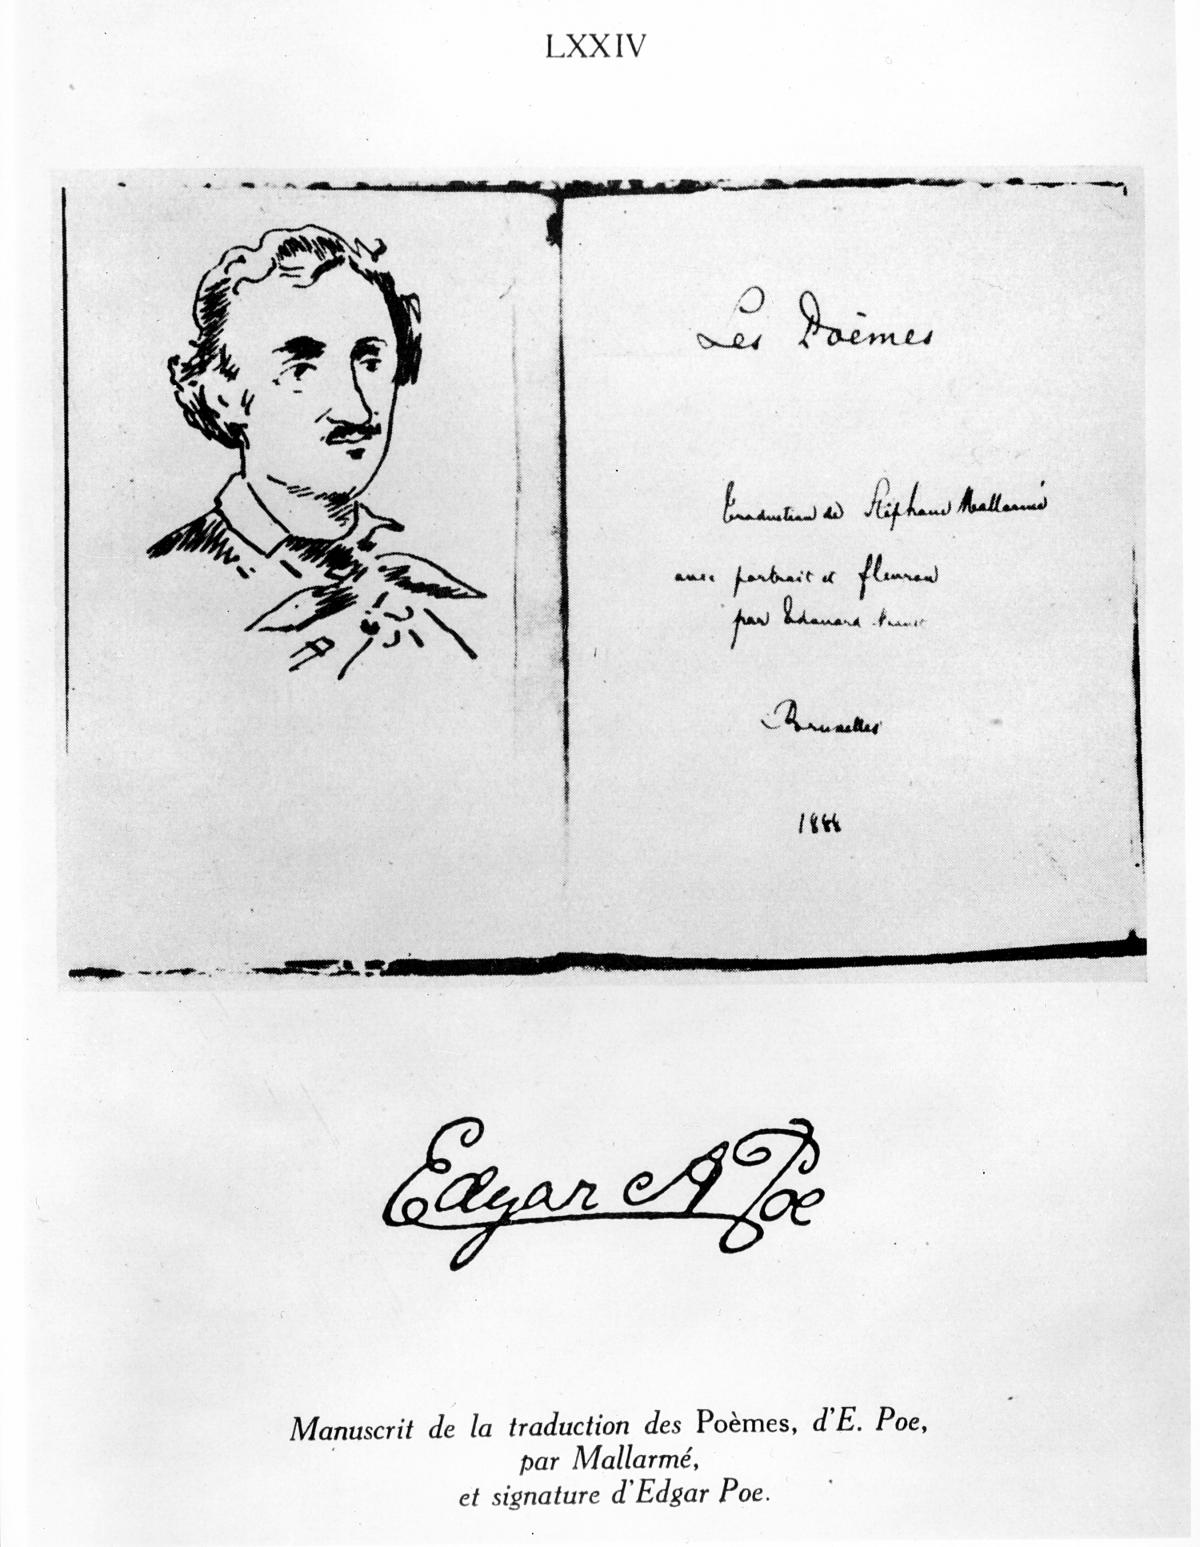 Sketch of Edgar Allen Poe, next to the title of the work, in black script handwriting